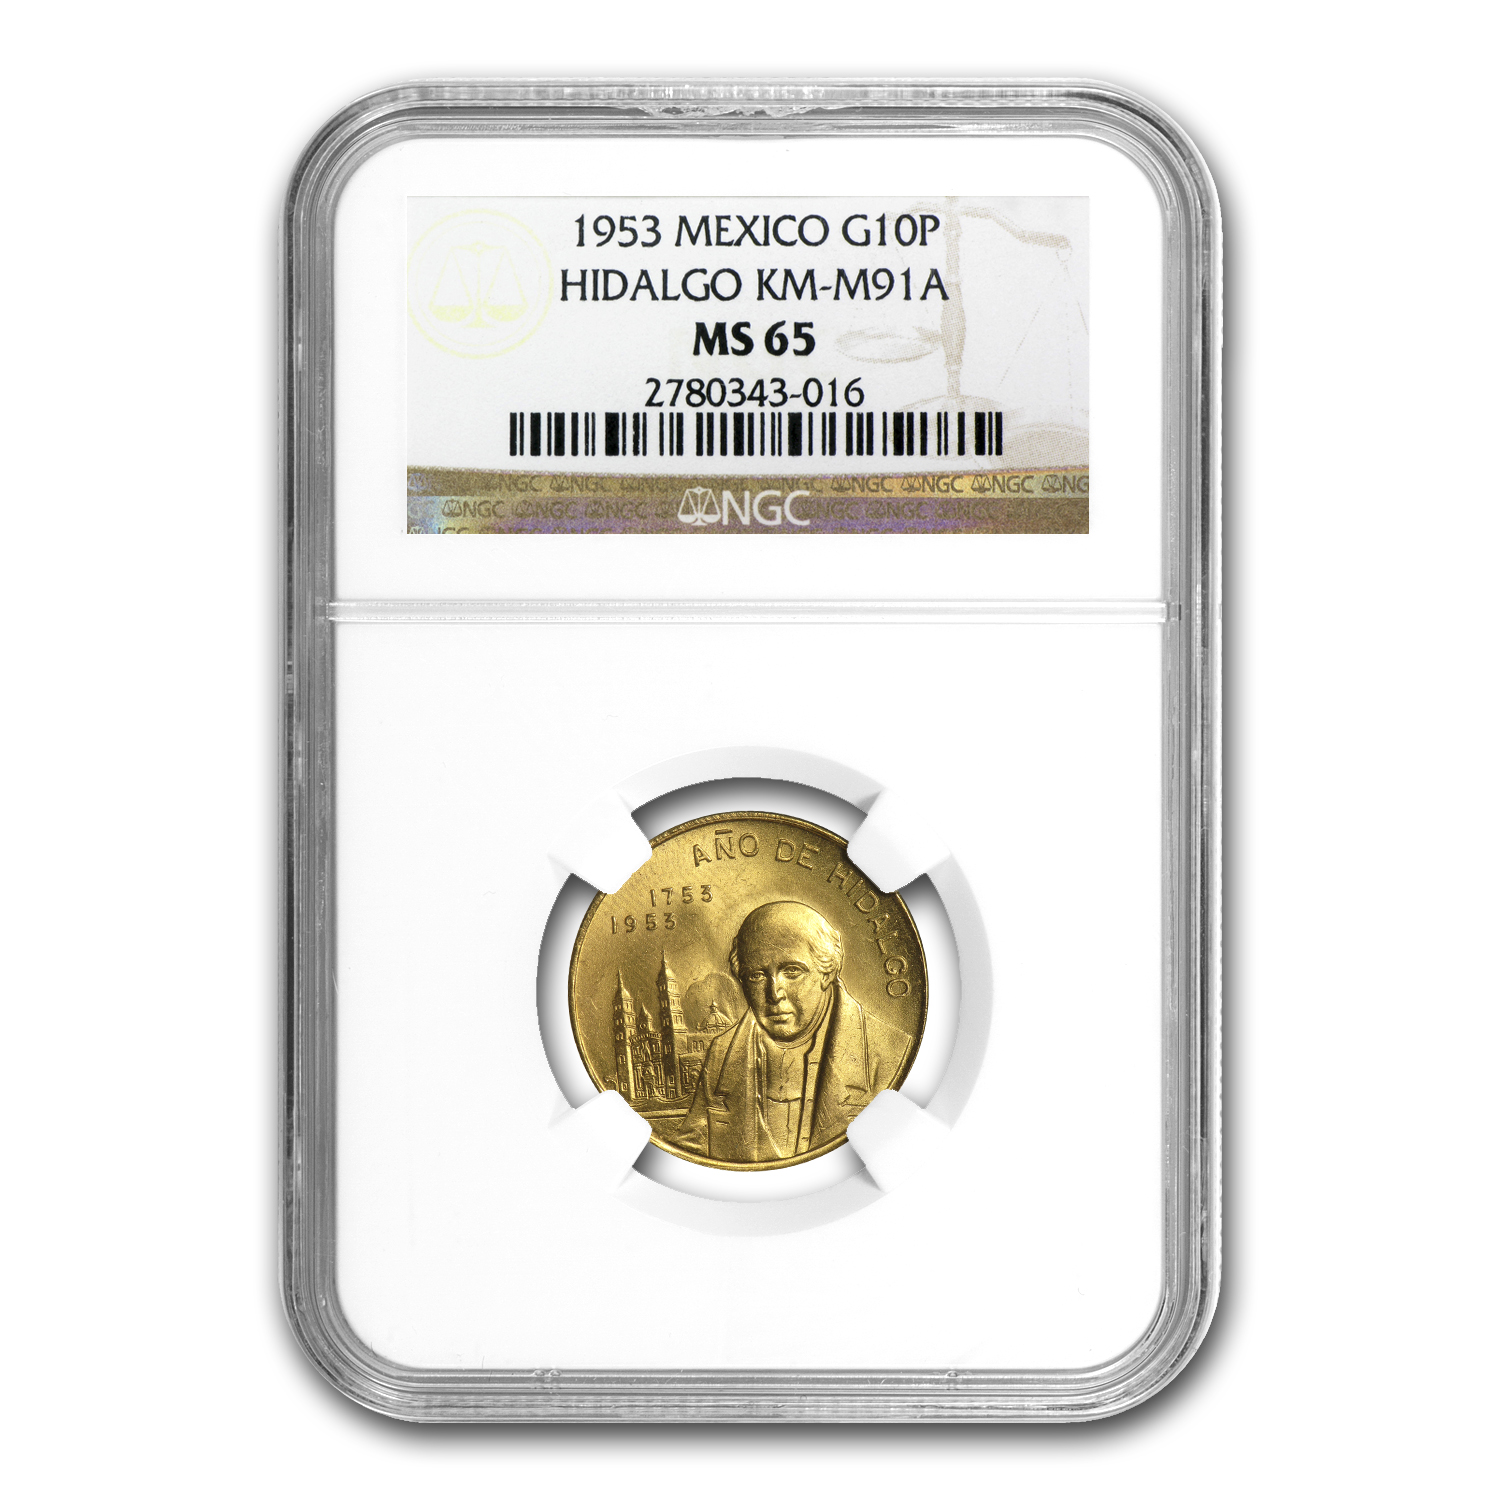 Mexico 1953 Year of Hidalgo Gold Medal - MS-65 NGC